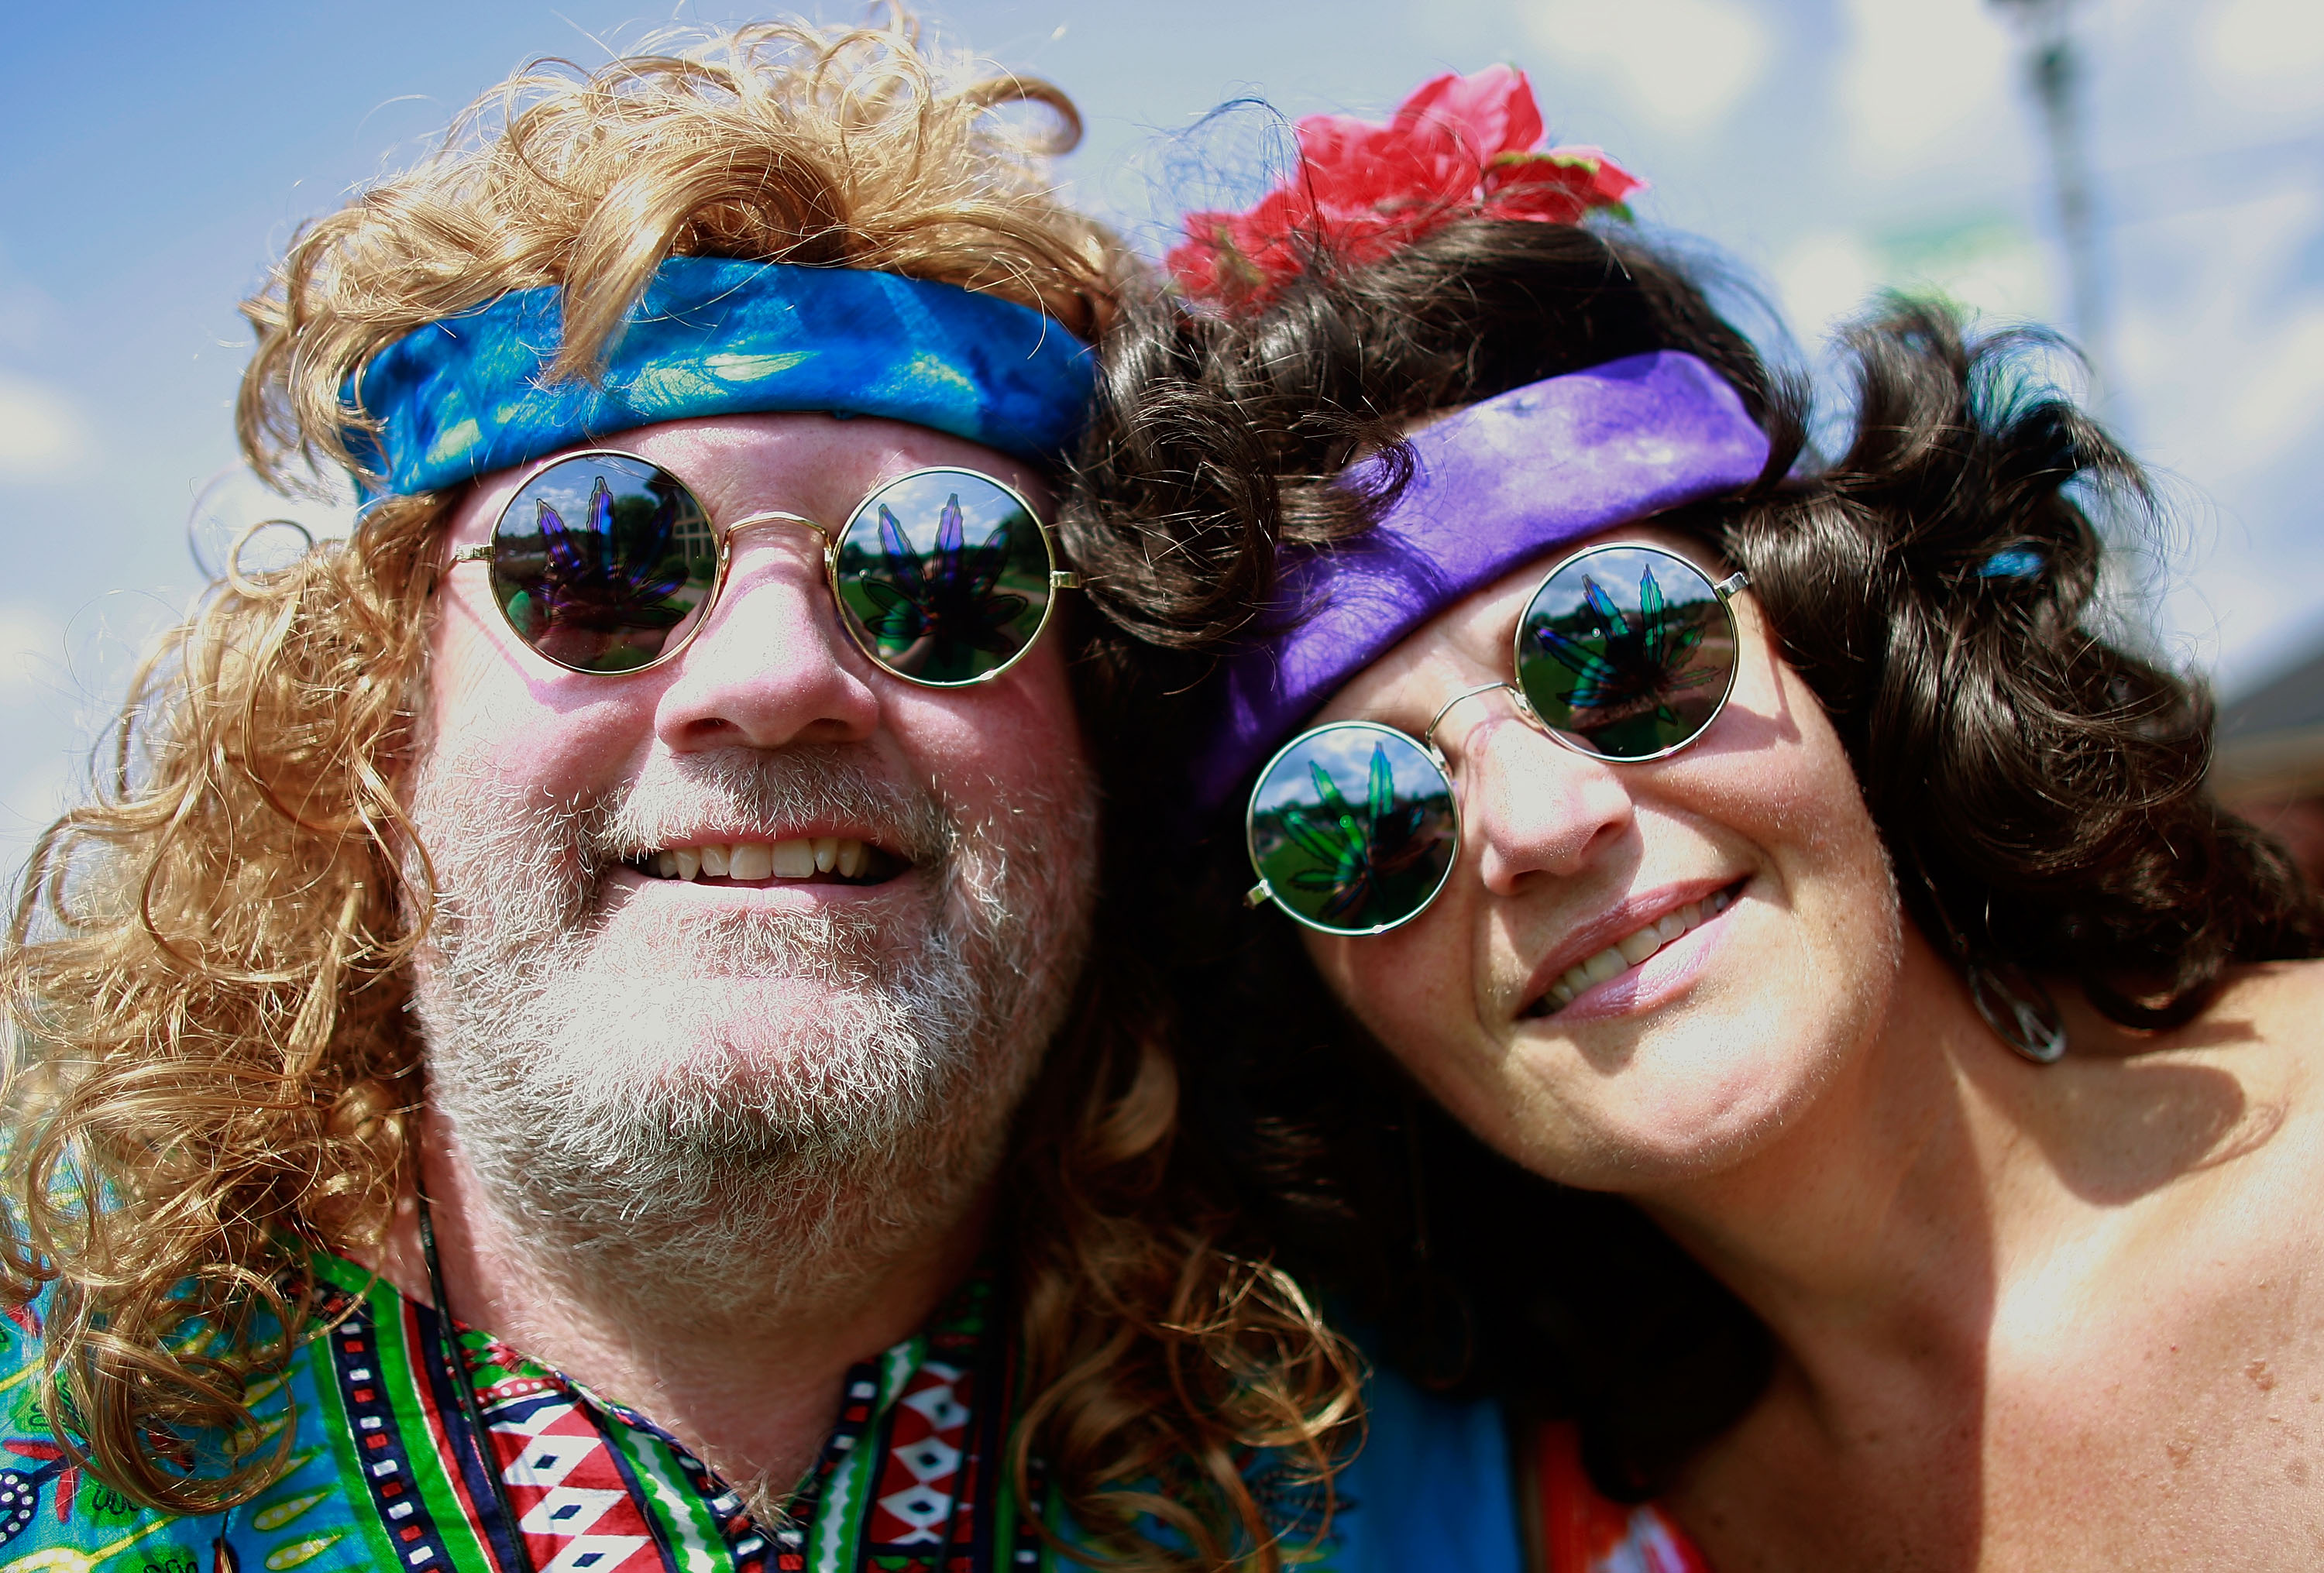 BETHEL, NY - AUGUST 15: Judy Remo and John Micik wait to attend the concert marking the 40th anniversary of the Woodstock mus